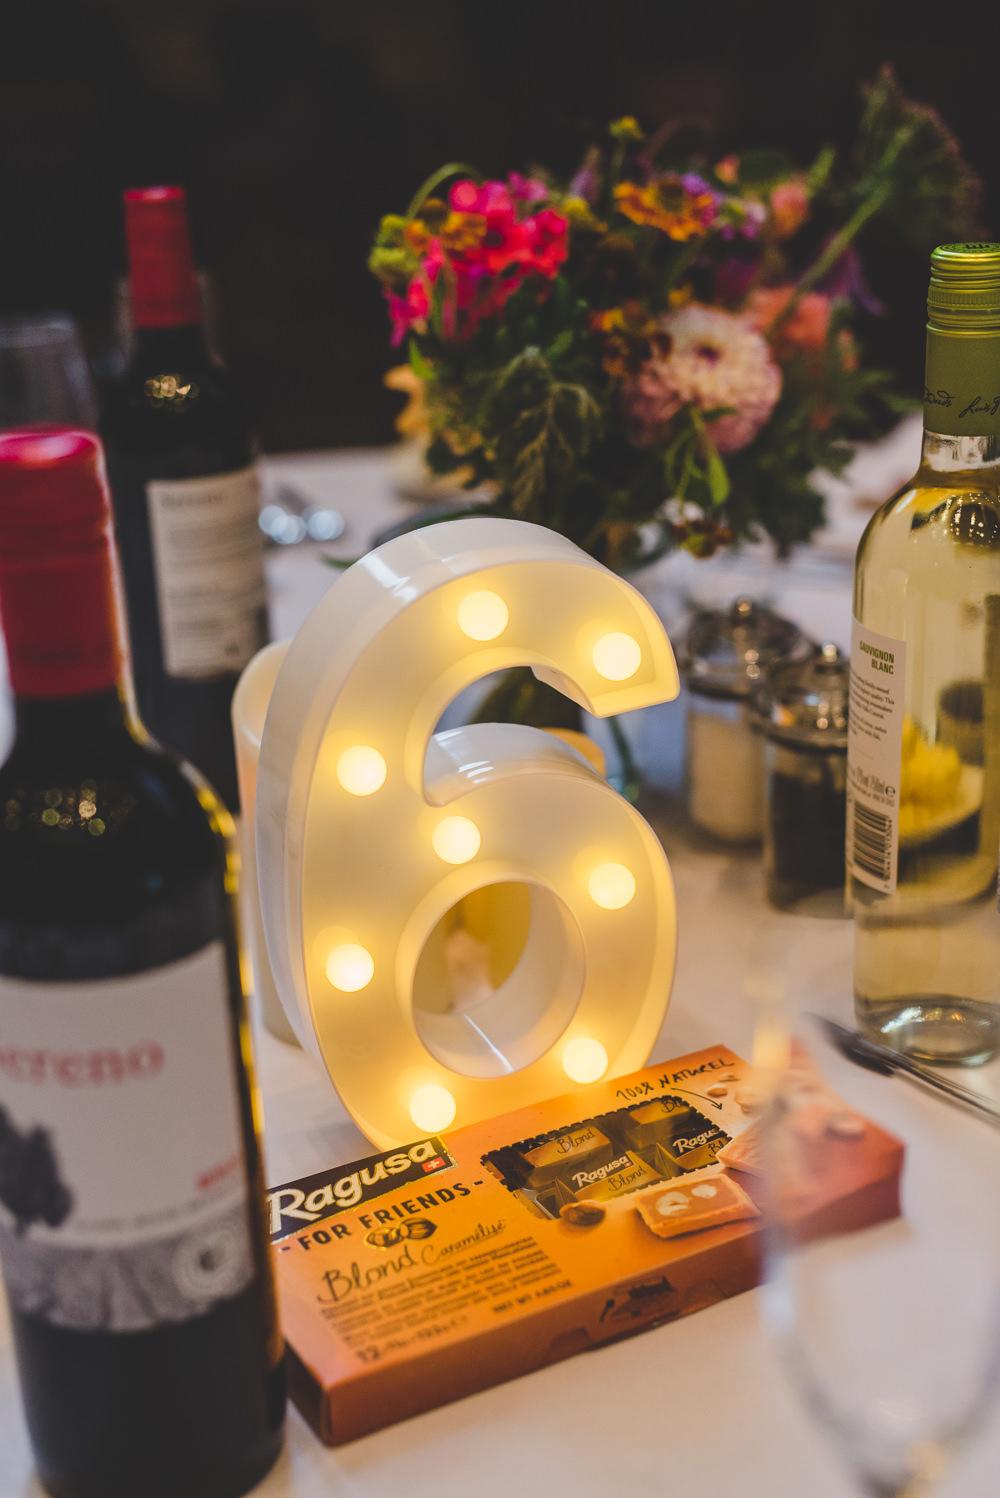 Light Up Number Circus Bulb Table Victoria Gallery Museum Wedding Emma Hillier Photography